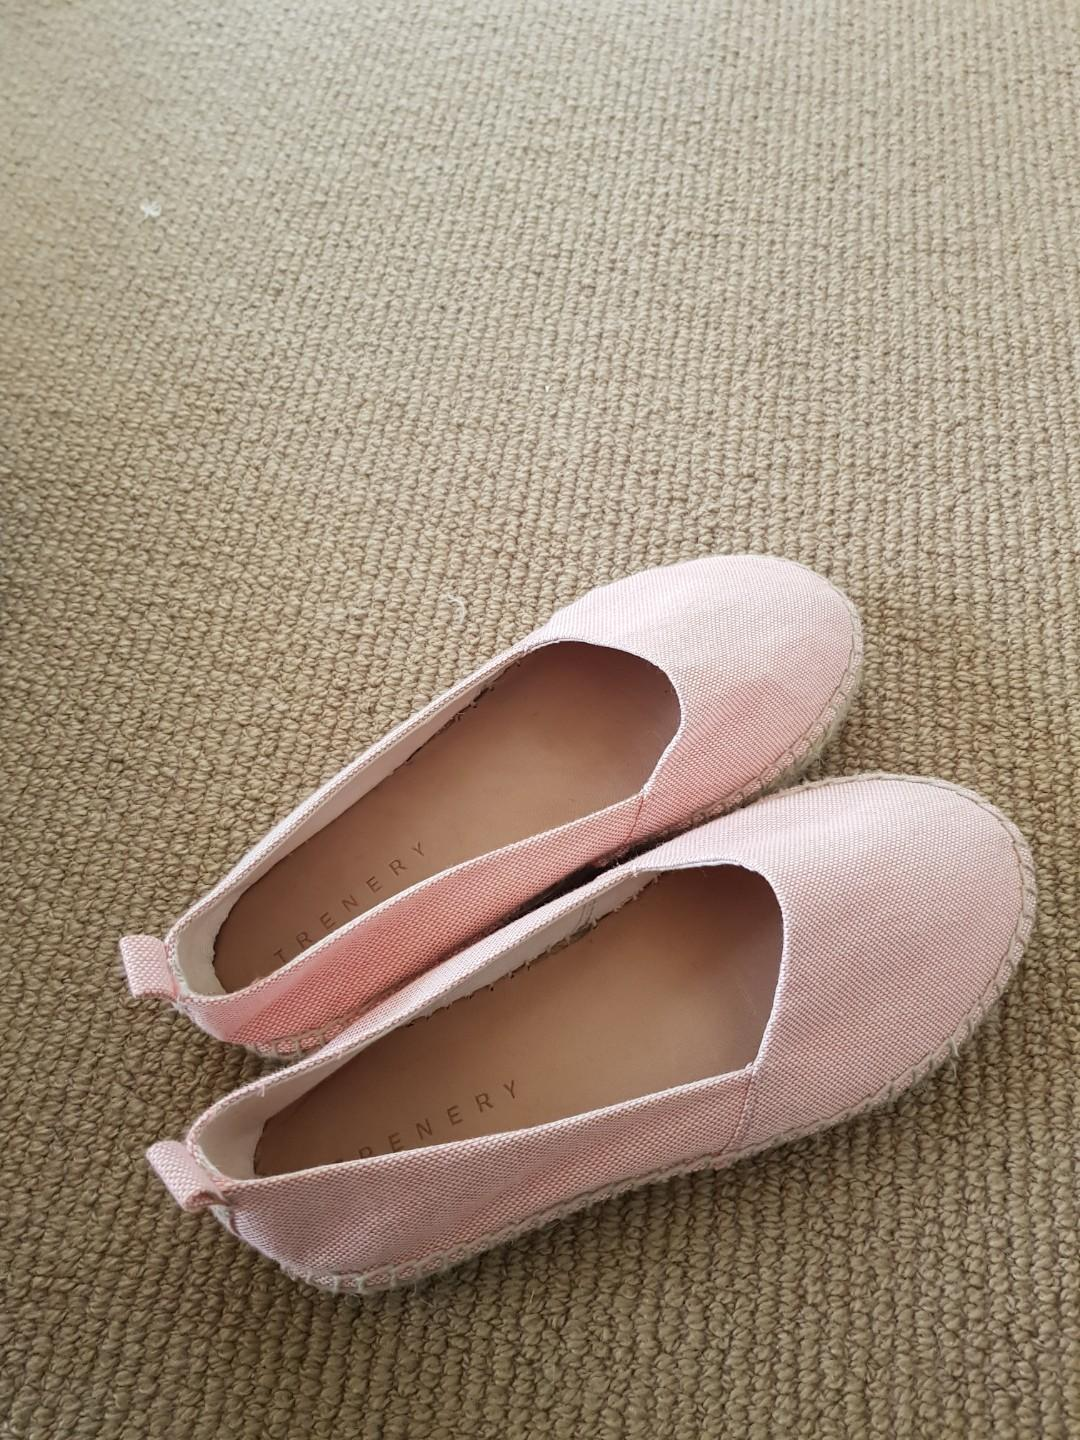 Womens TRENERY Pink Espadrilles Casual Flats Shoes Size 37 (6/6.5)